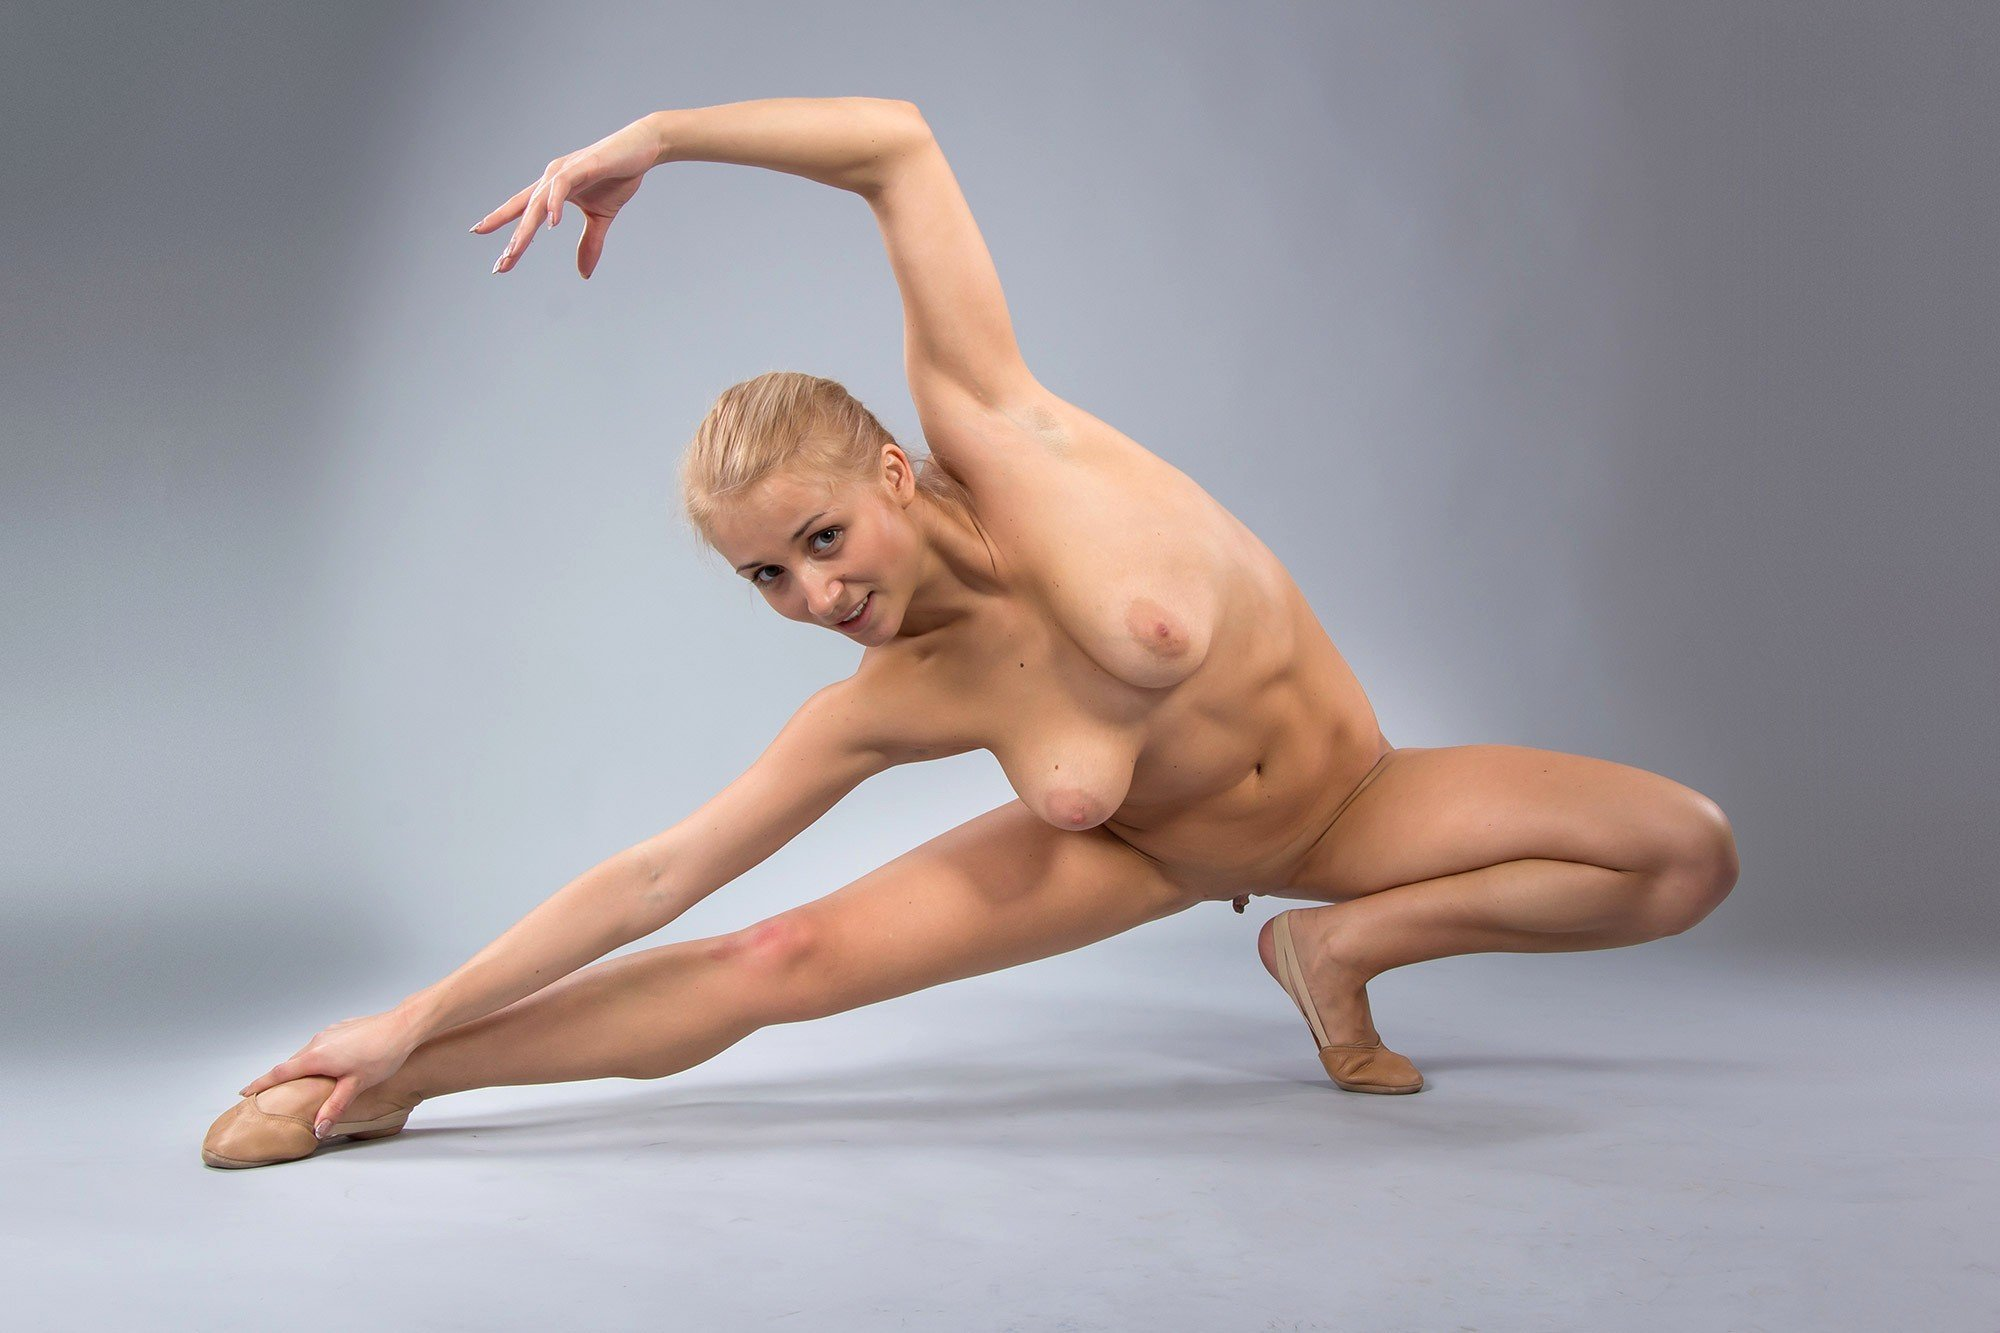 Nude gymnastic babes pictures